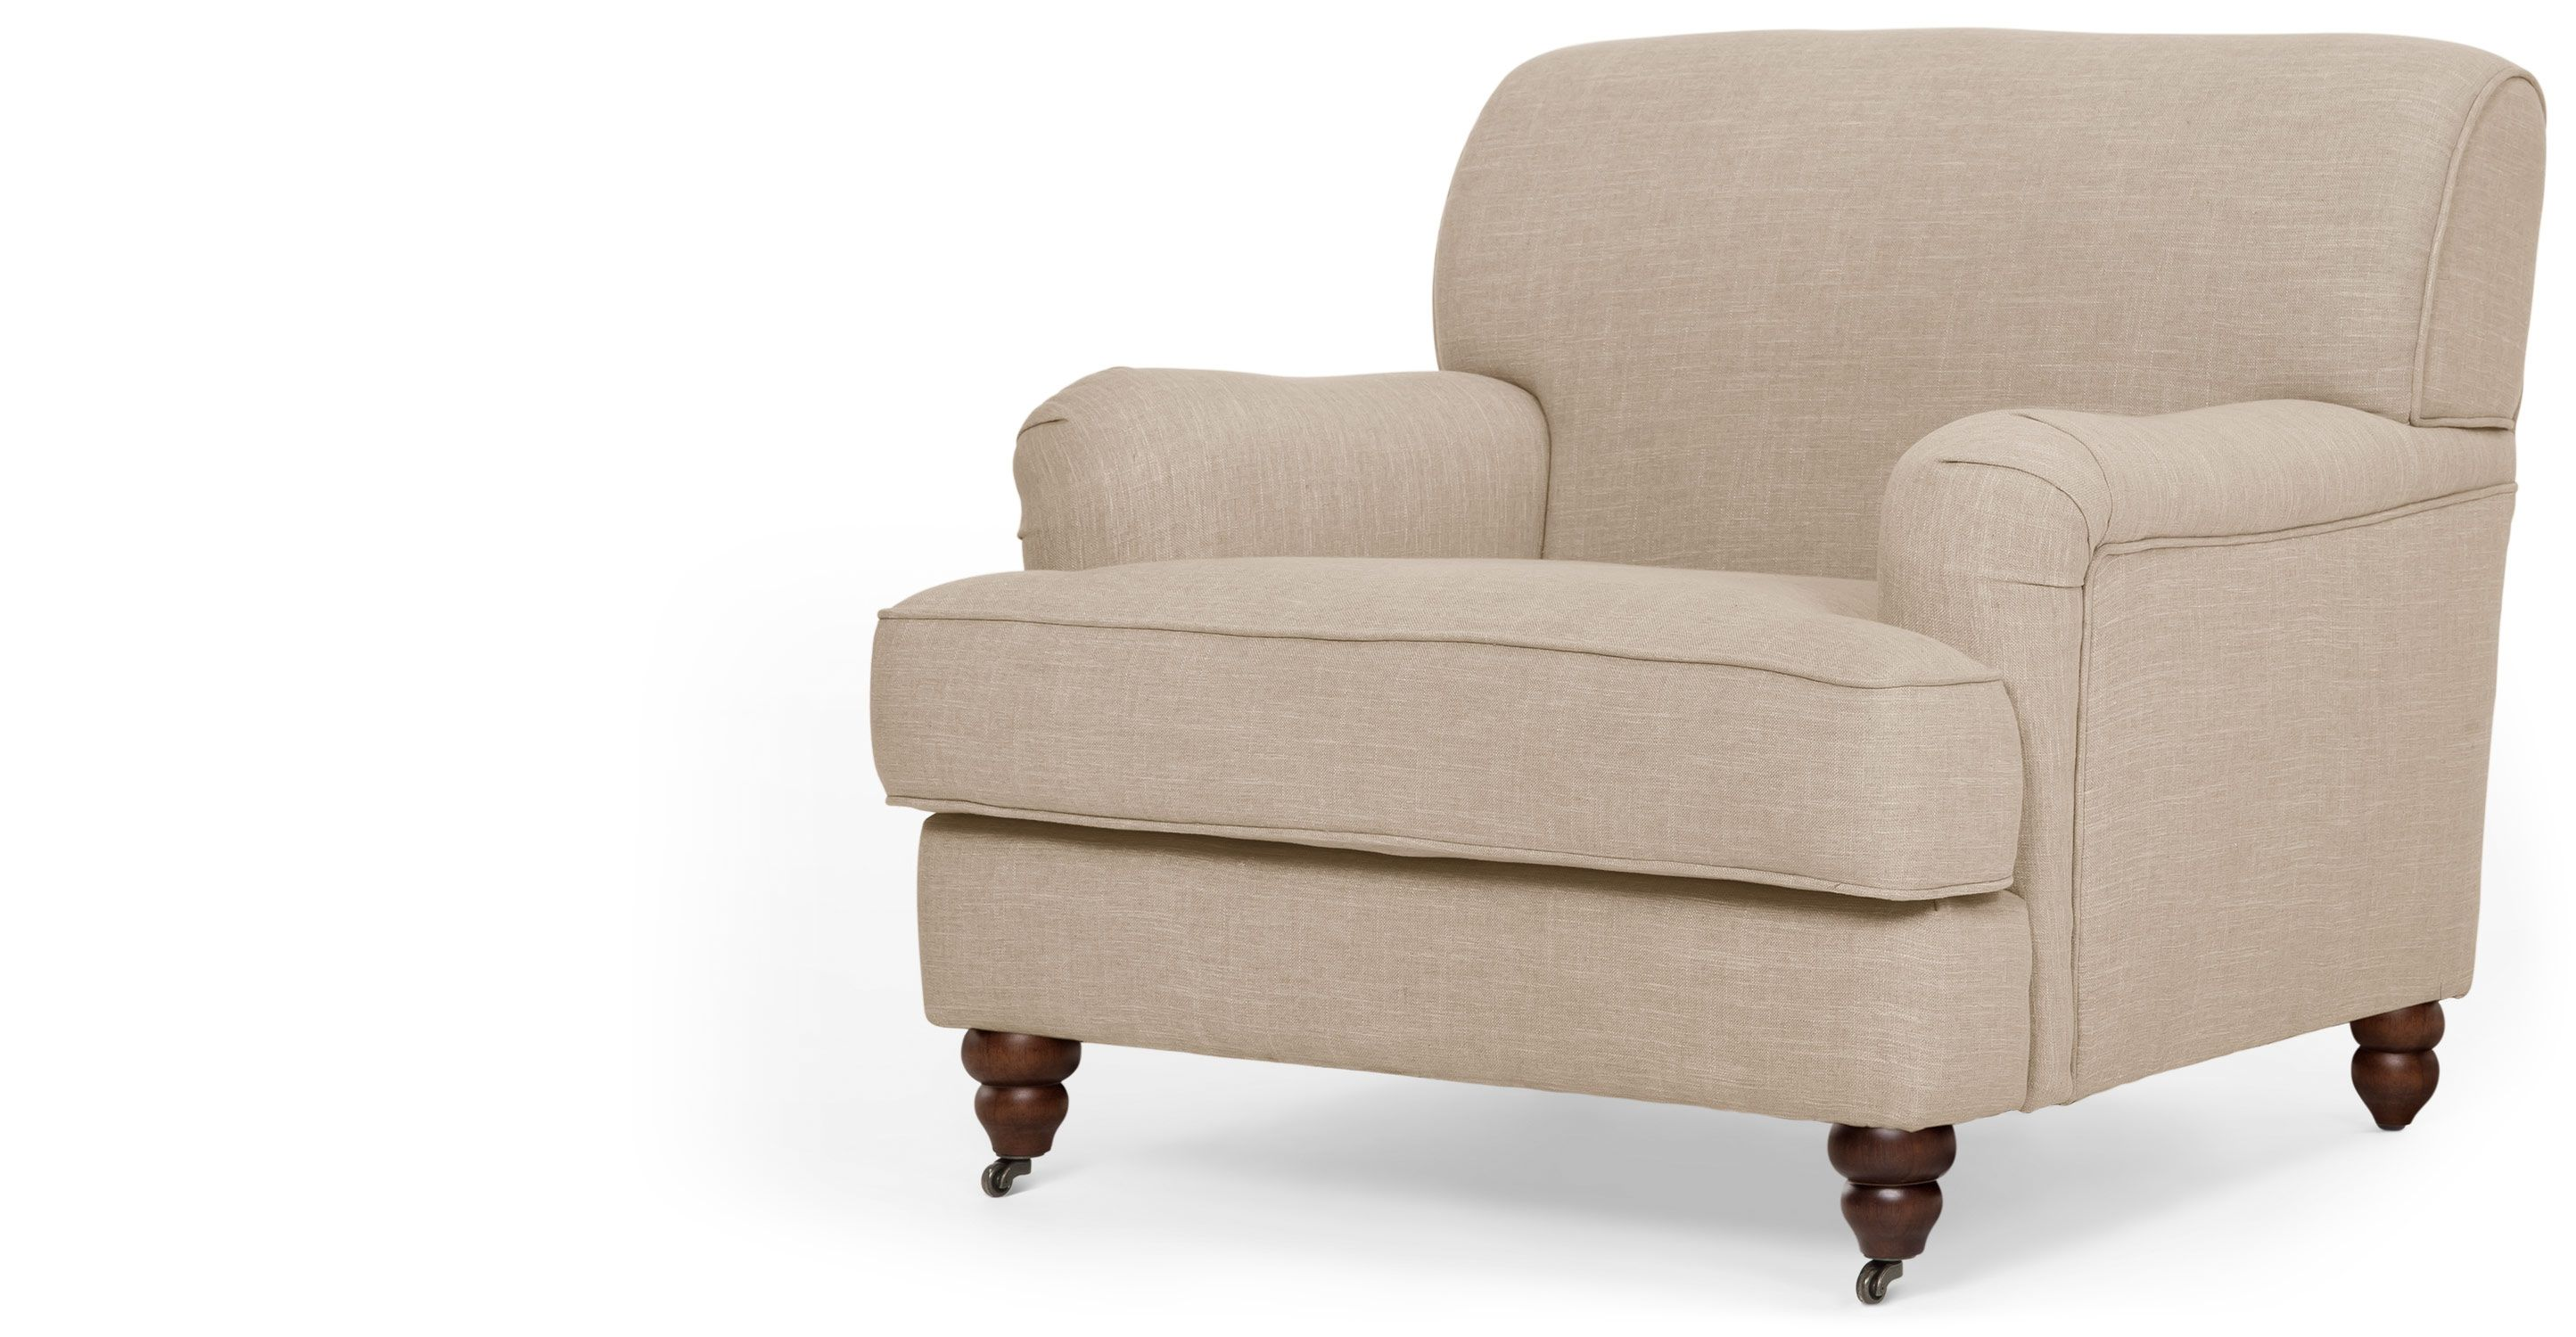 Orson Armchair, Biscuit Beige - chair for back living room?